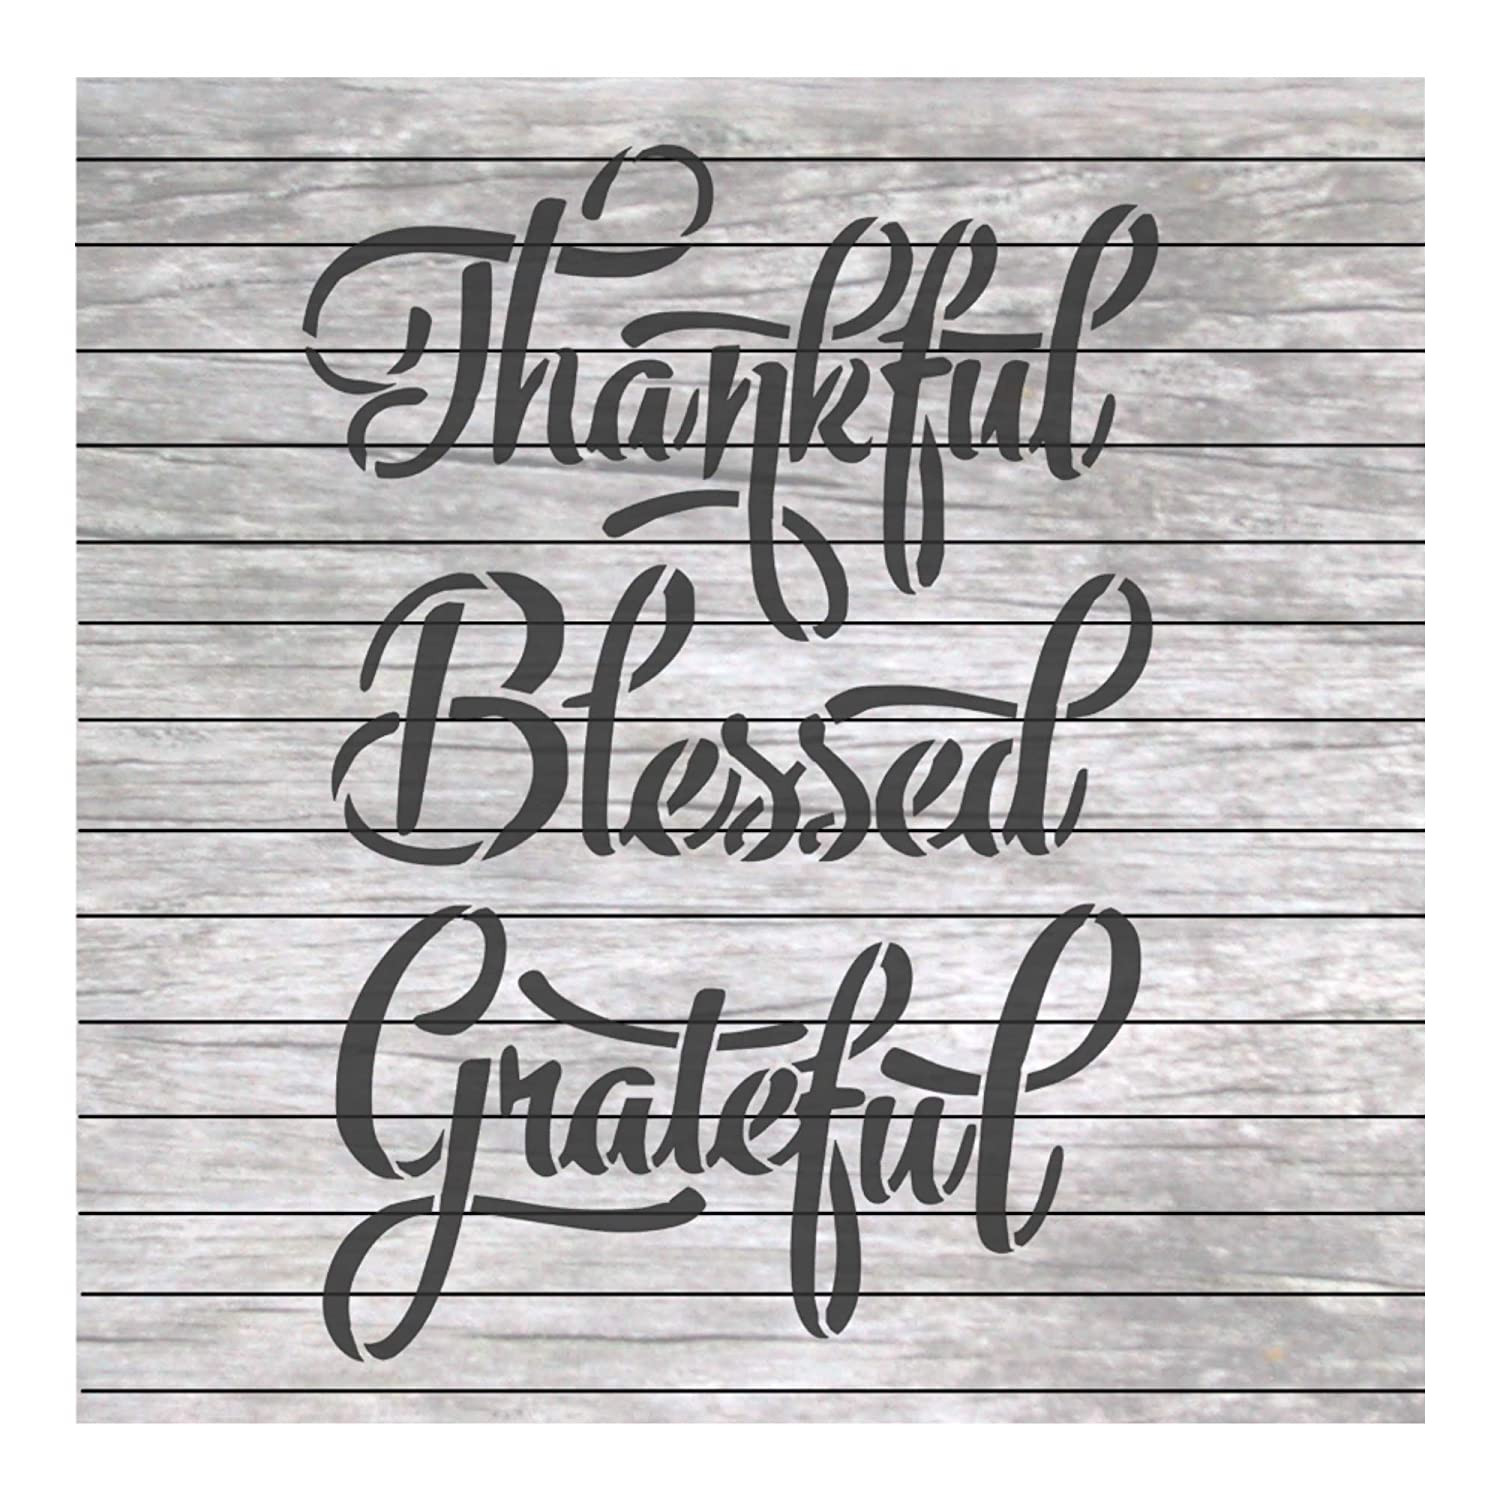 Thanksgiving Words Stencil Grateful Thankful Blessed for Craft and Home Decoration Wood Signs NW054 Stencil Land